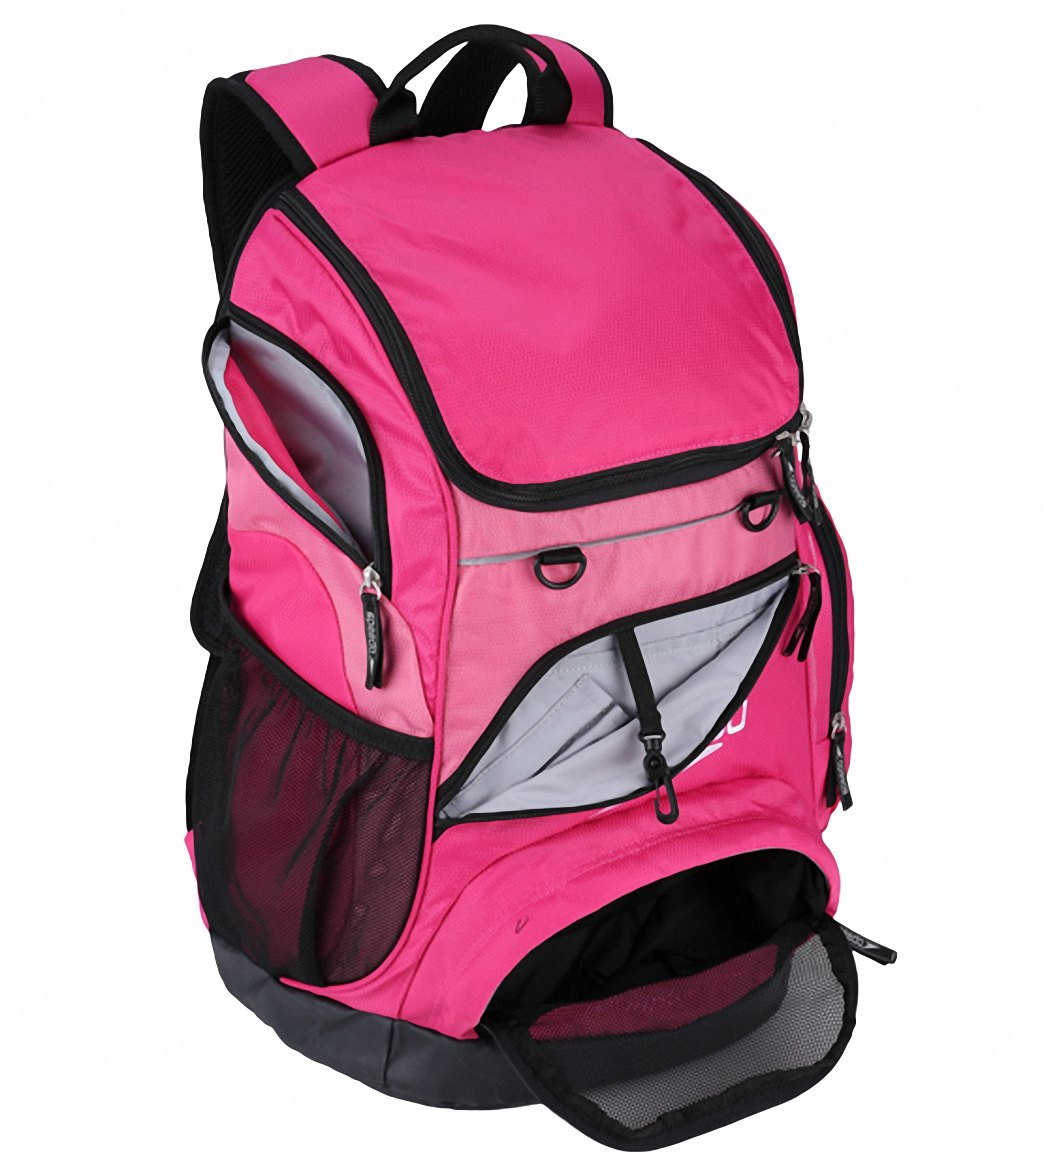 7f8406338ca Speedo Large 35L Teamster Backpack at SwimOutlet.com - Free Shipping